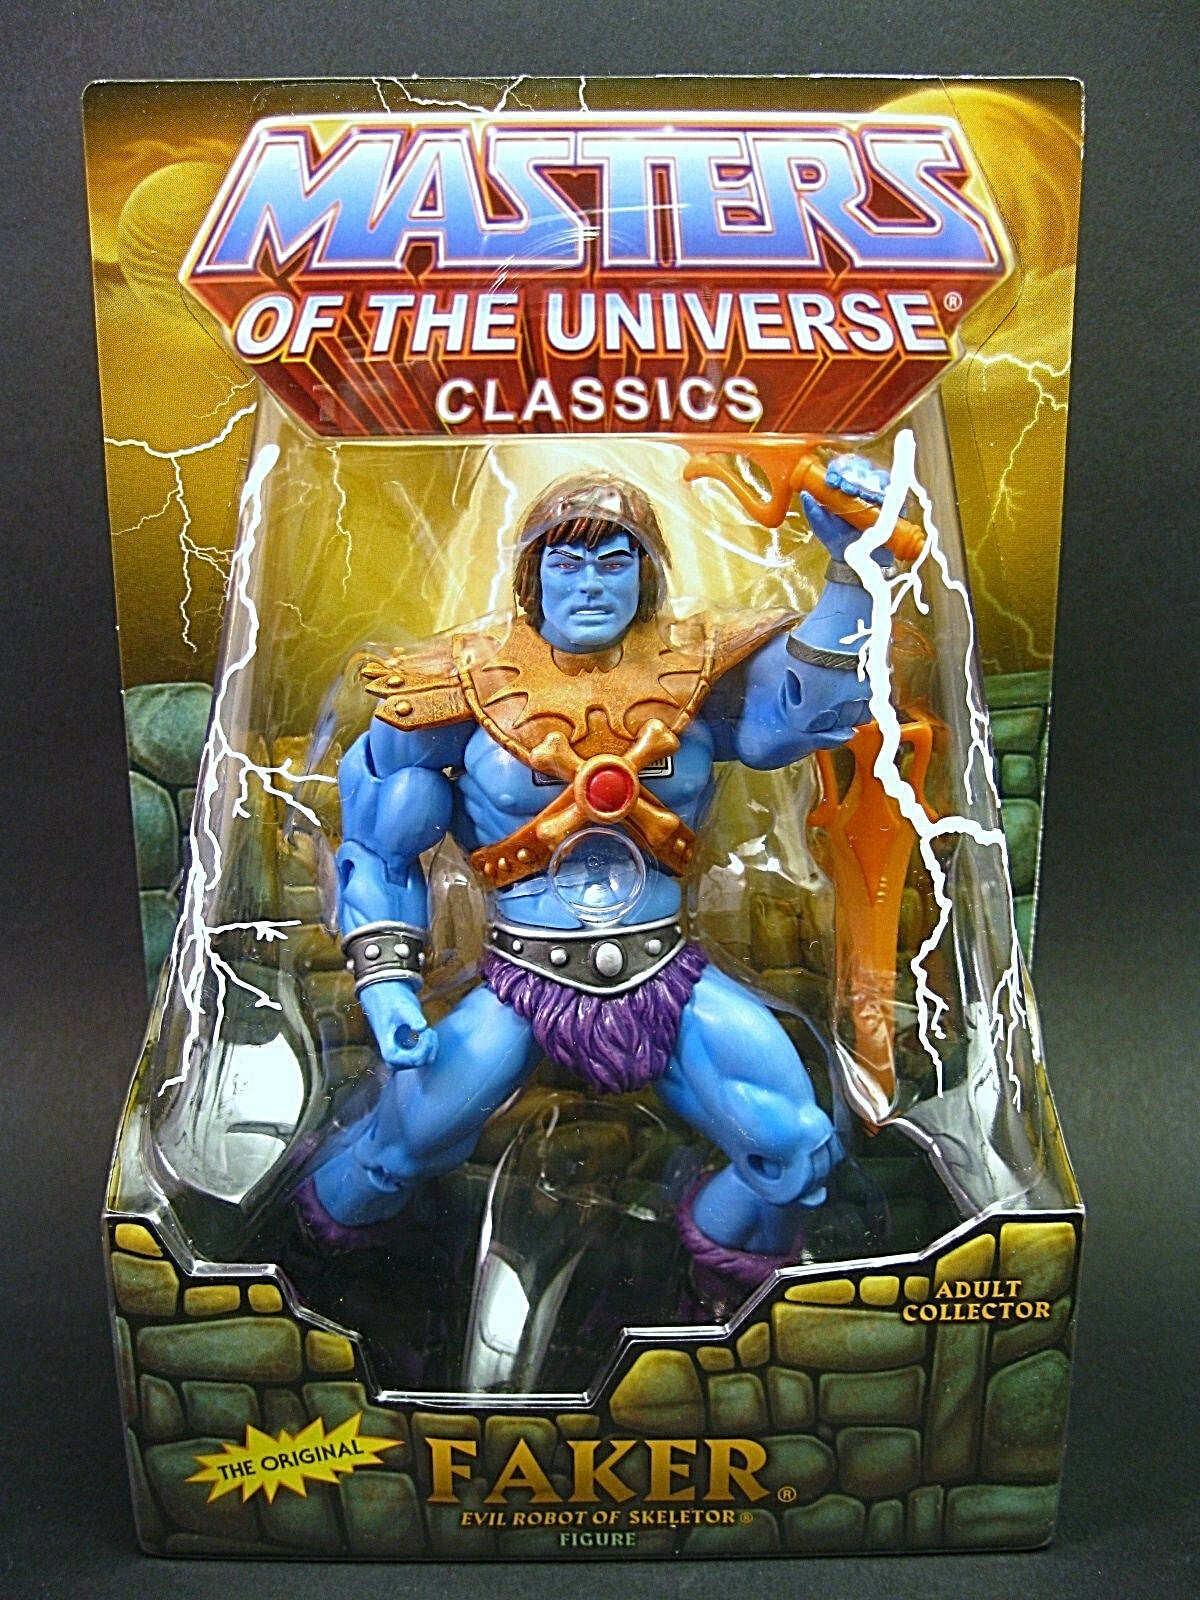 MASTERS OF THE UNIVERSE Classics__FAKER action figure__Exclusive Limited Edition